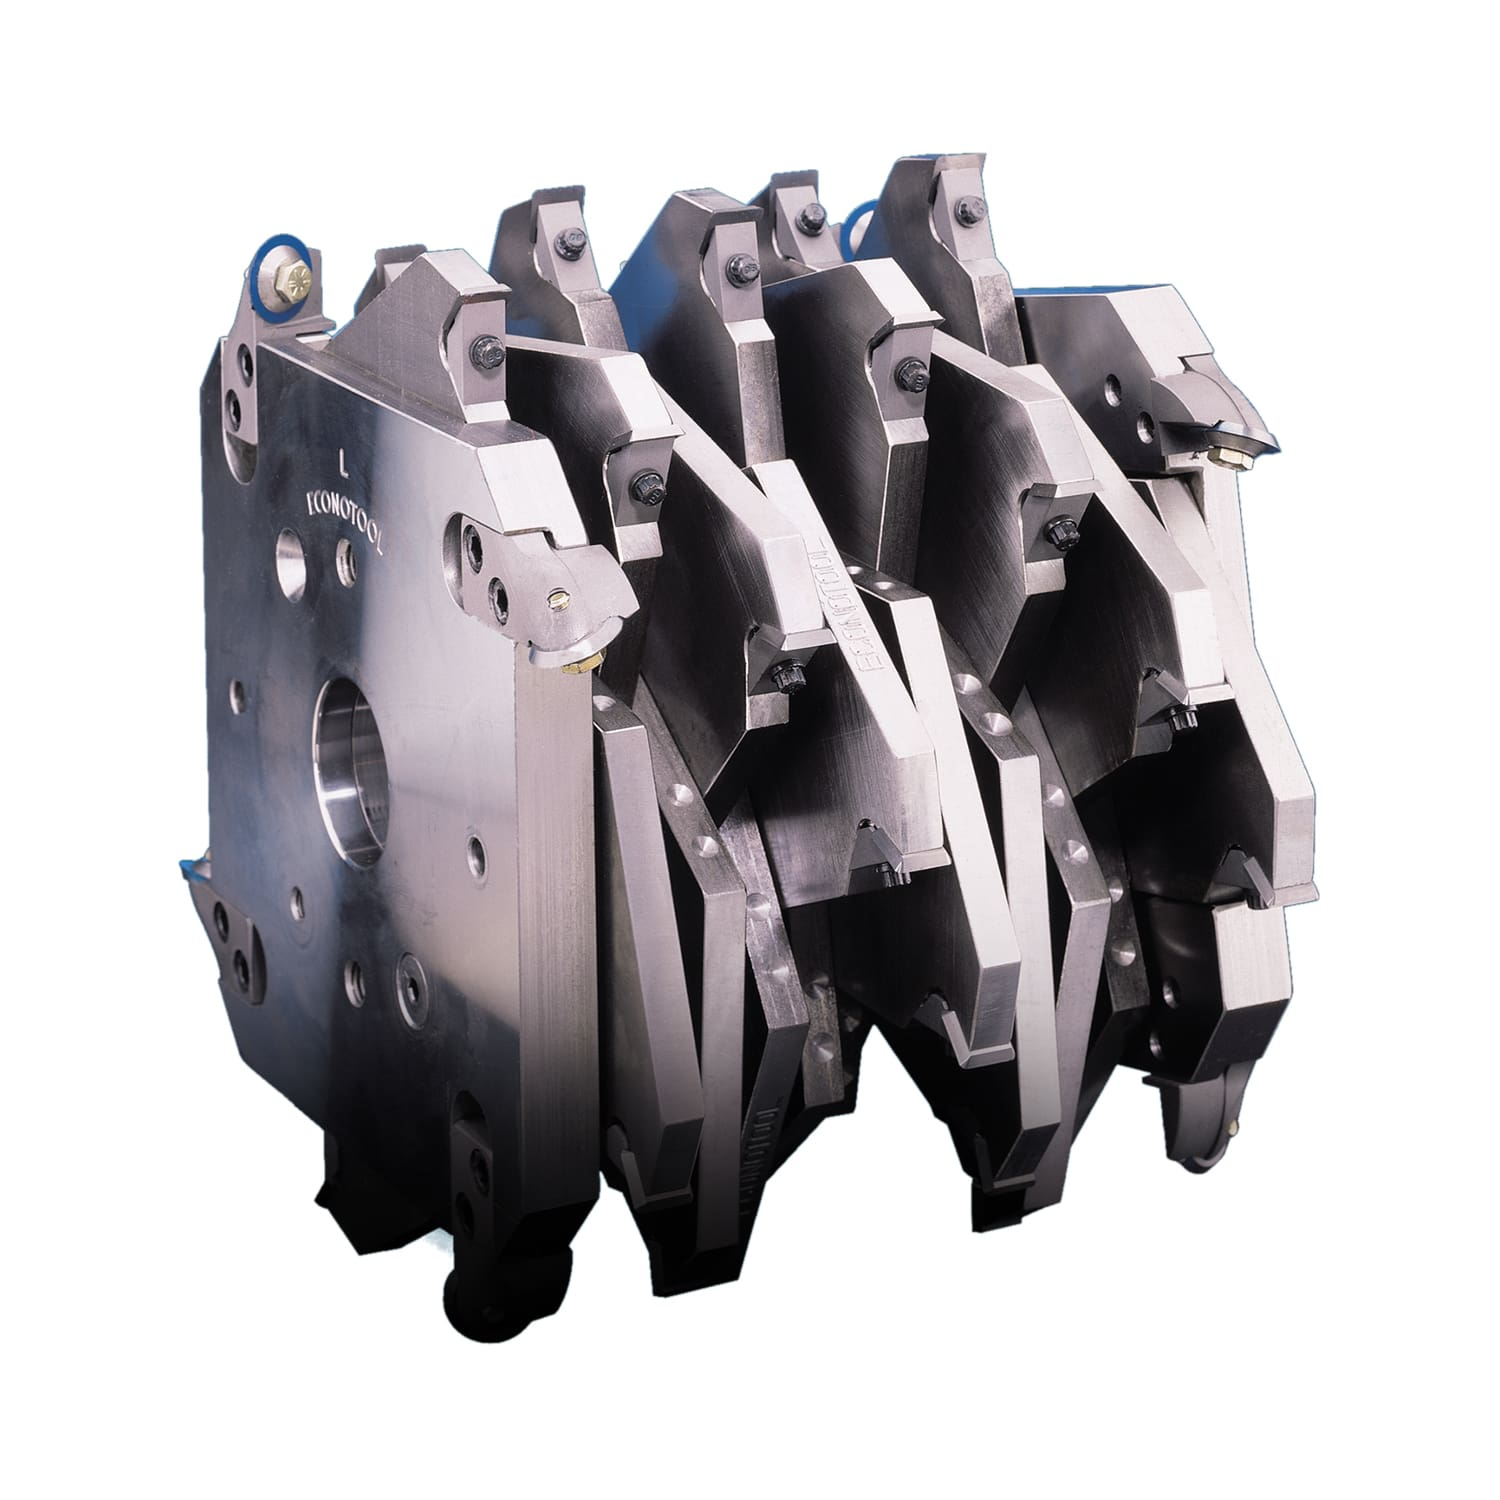 0.5`` Radius Notching Indexable Cutter Head With Replaceable Inserts